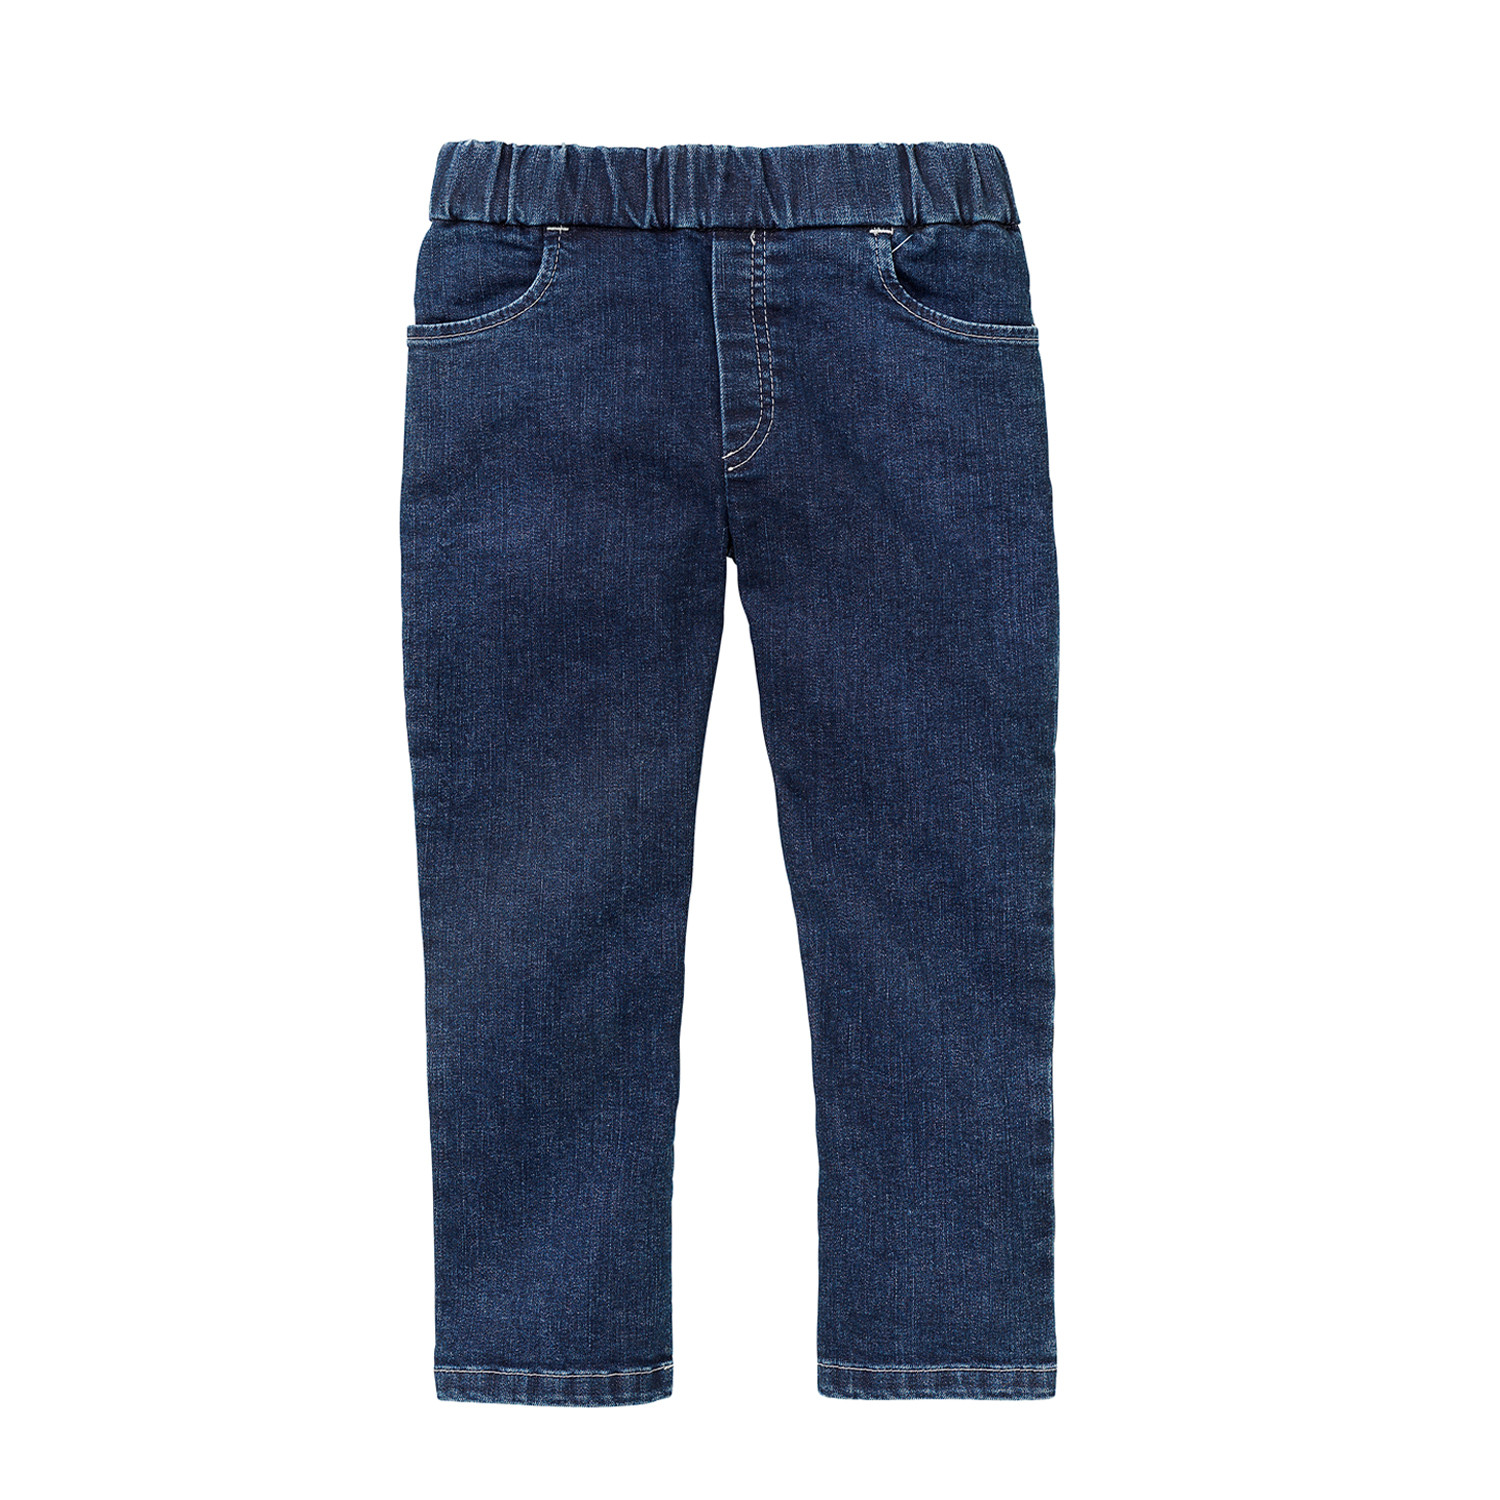 minibär DESIGN Kinderjeans in bio-katoen, denim-blue | Waschbär Eco-Shop from Waschbär